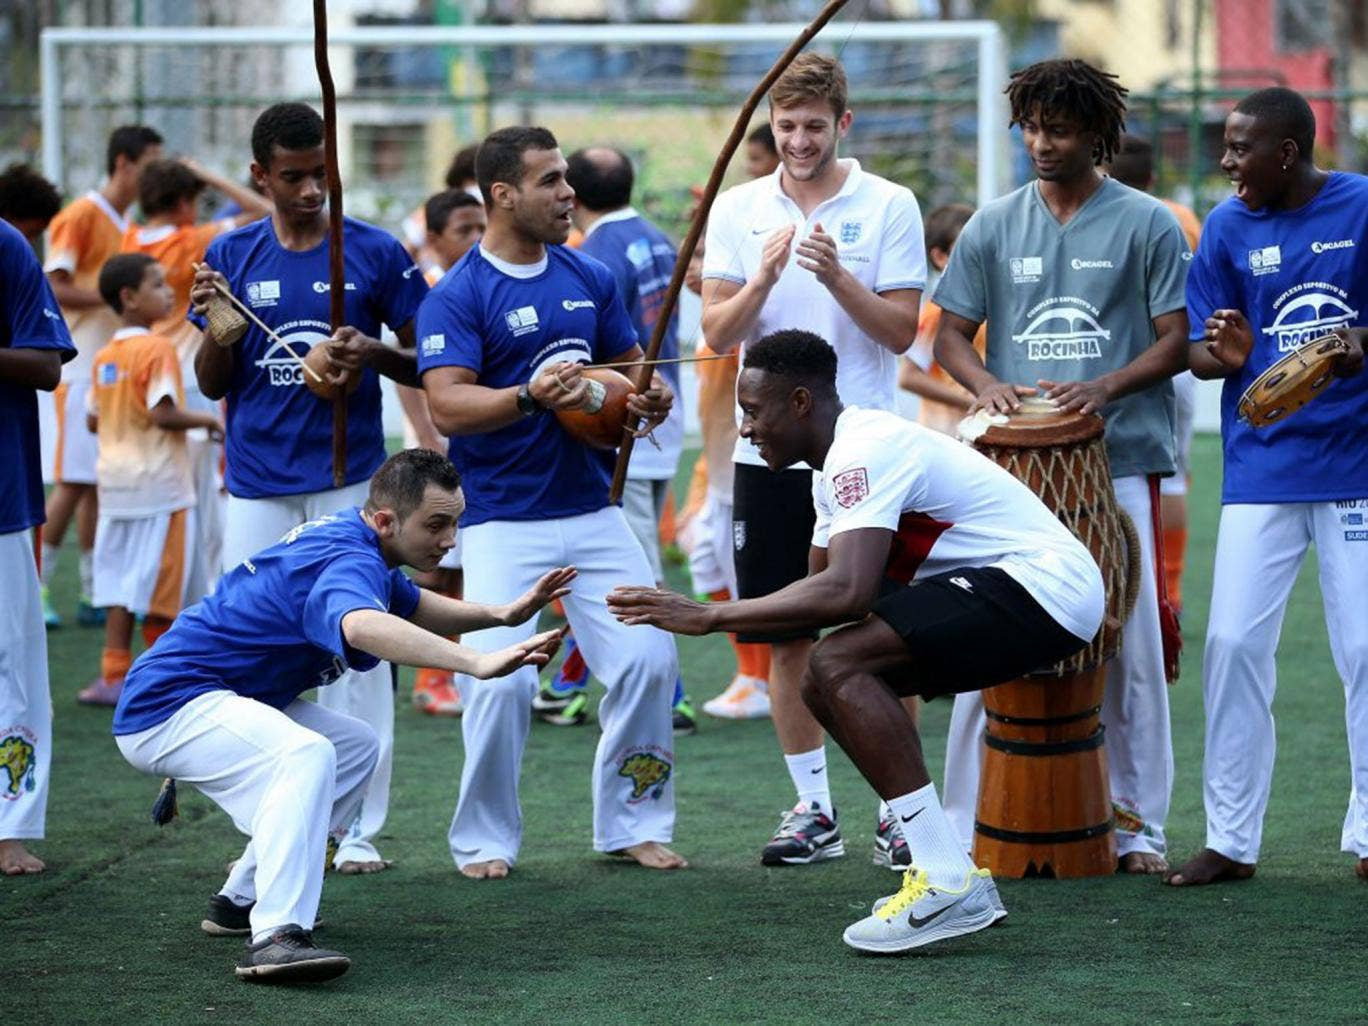 Danny Welbeck and Adam Lallana were among the willing participants in the capoeira session